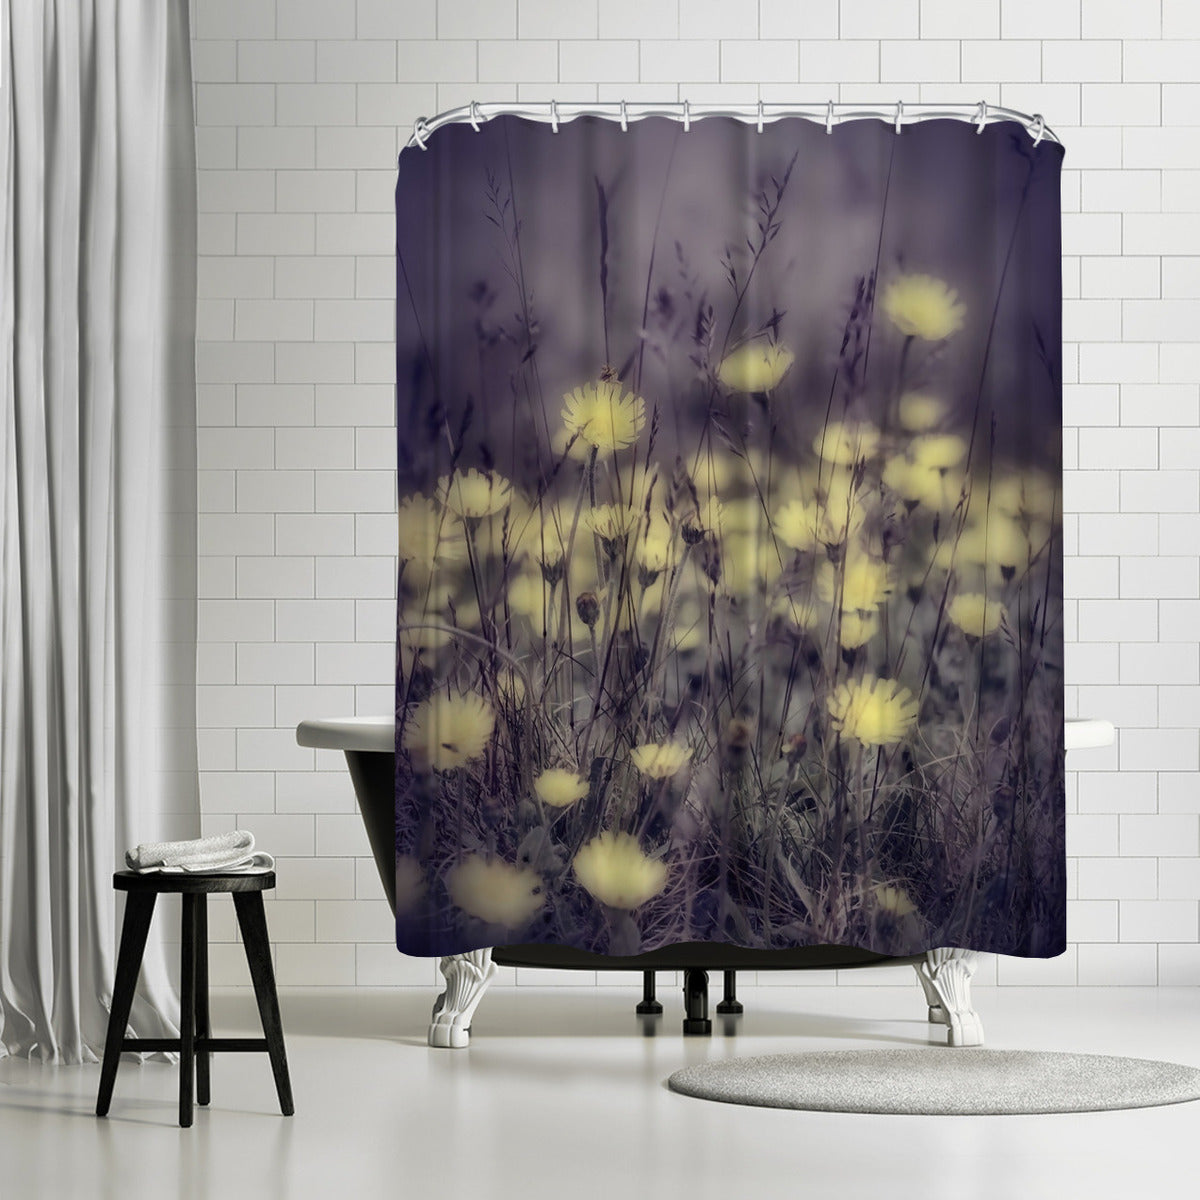 Yellow Floral Meadow by Mirja Paljakka Shower Curtain - Shower Curtain - Americanflat